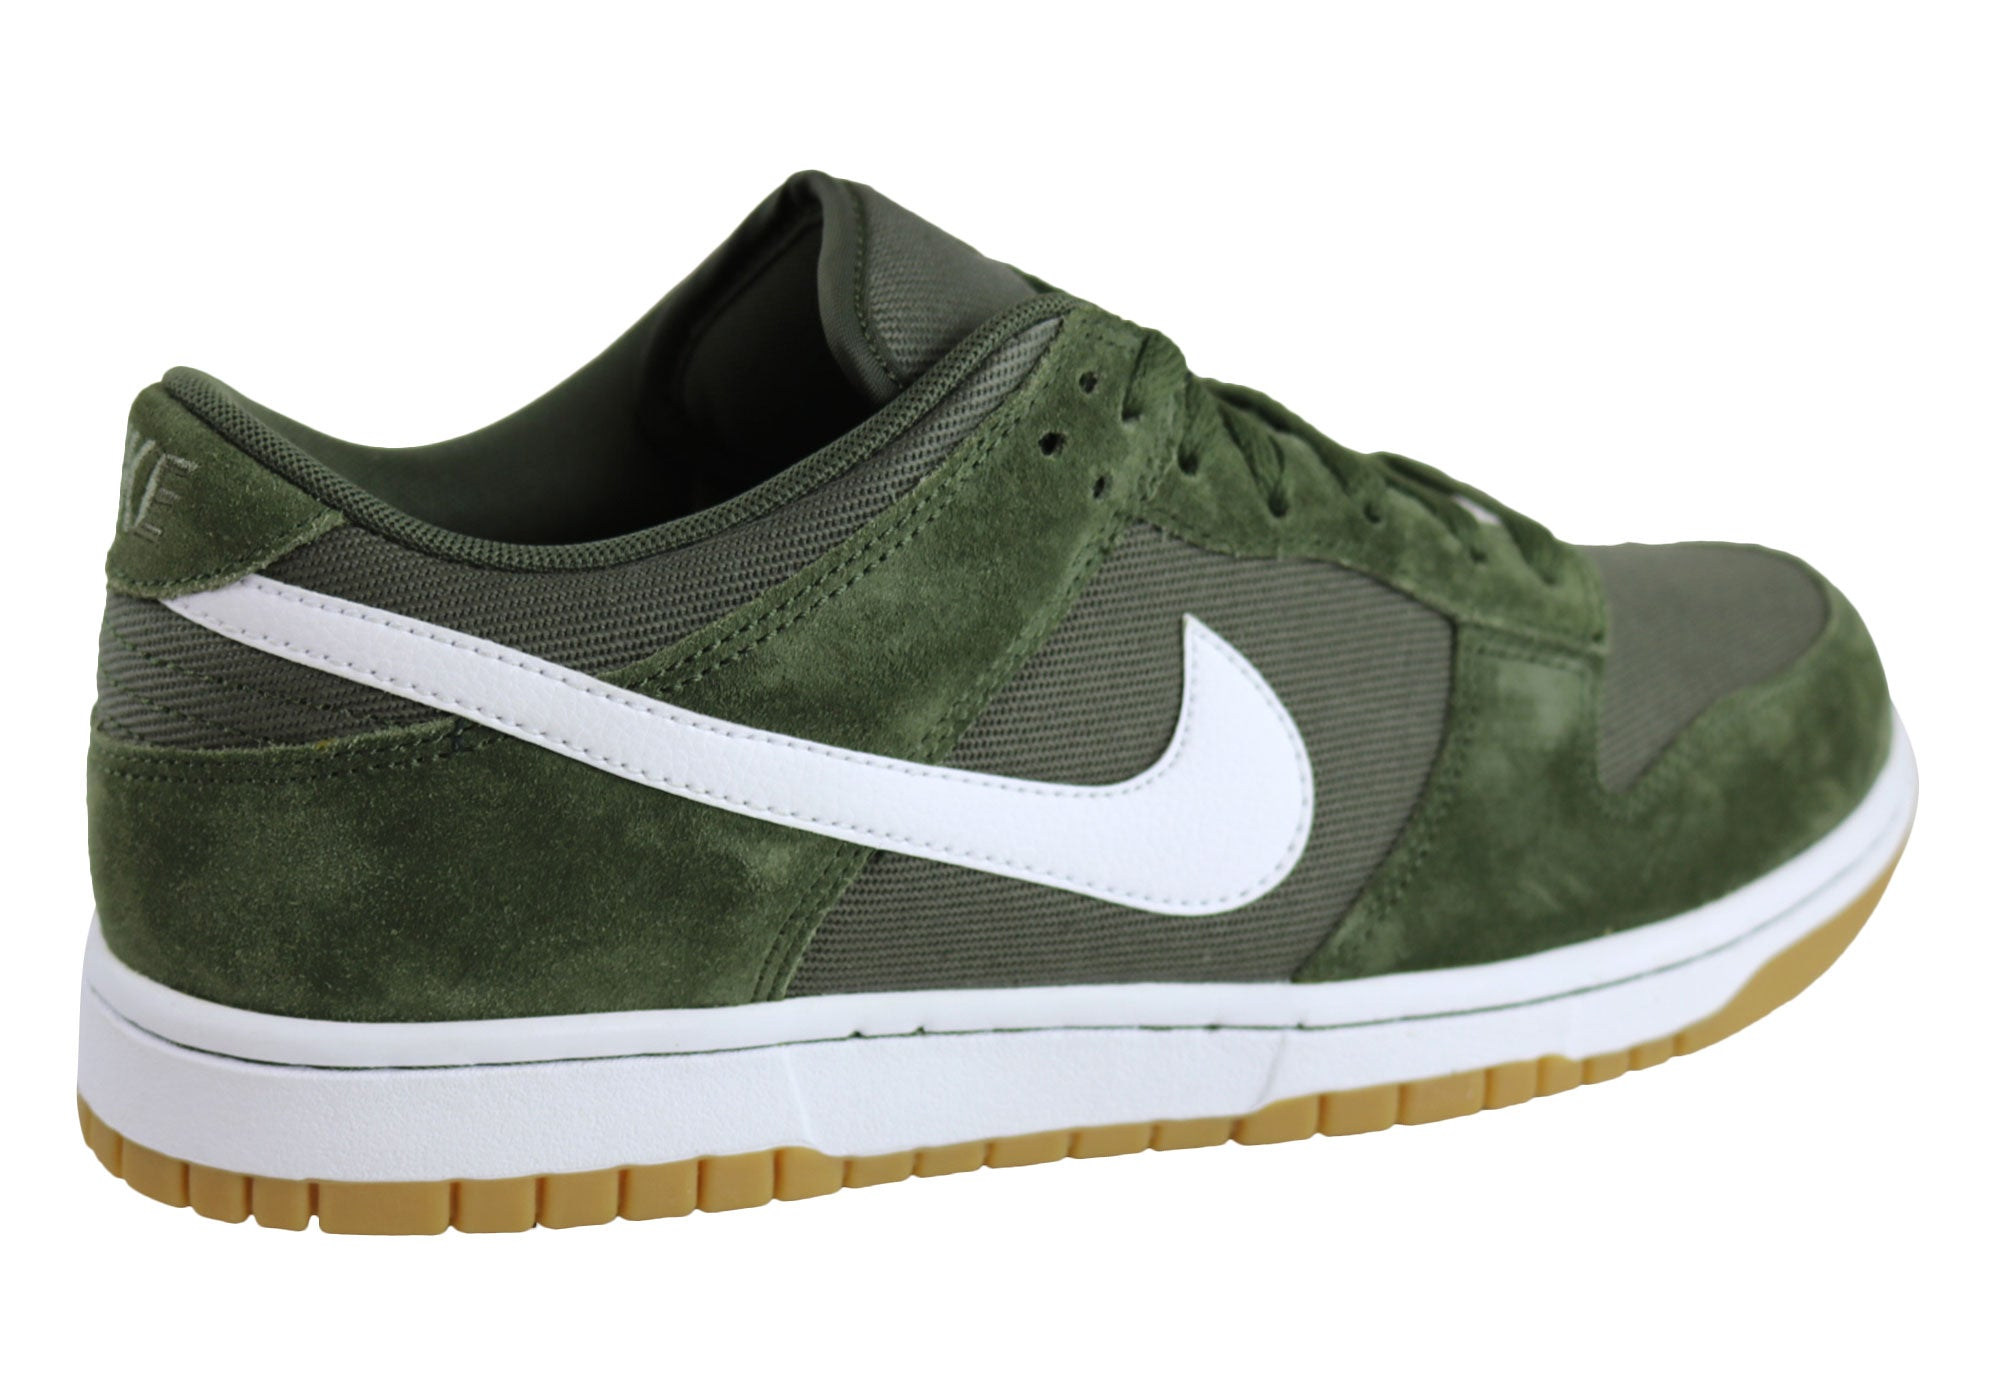 b20bbd926f3d4 Details about NEW NIKE MENS DUNK LOW CANVAS CASUAL LACE UP SHOES